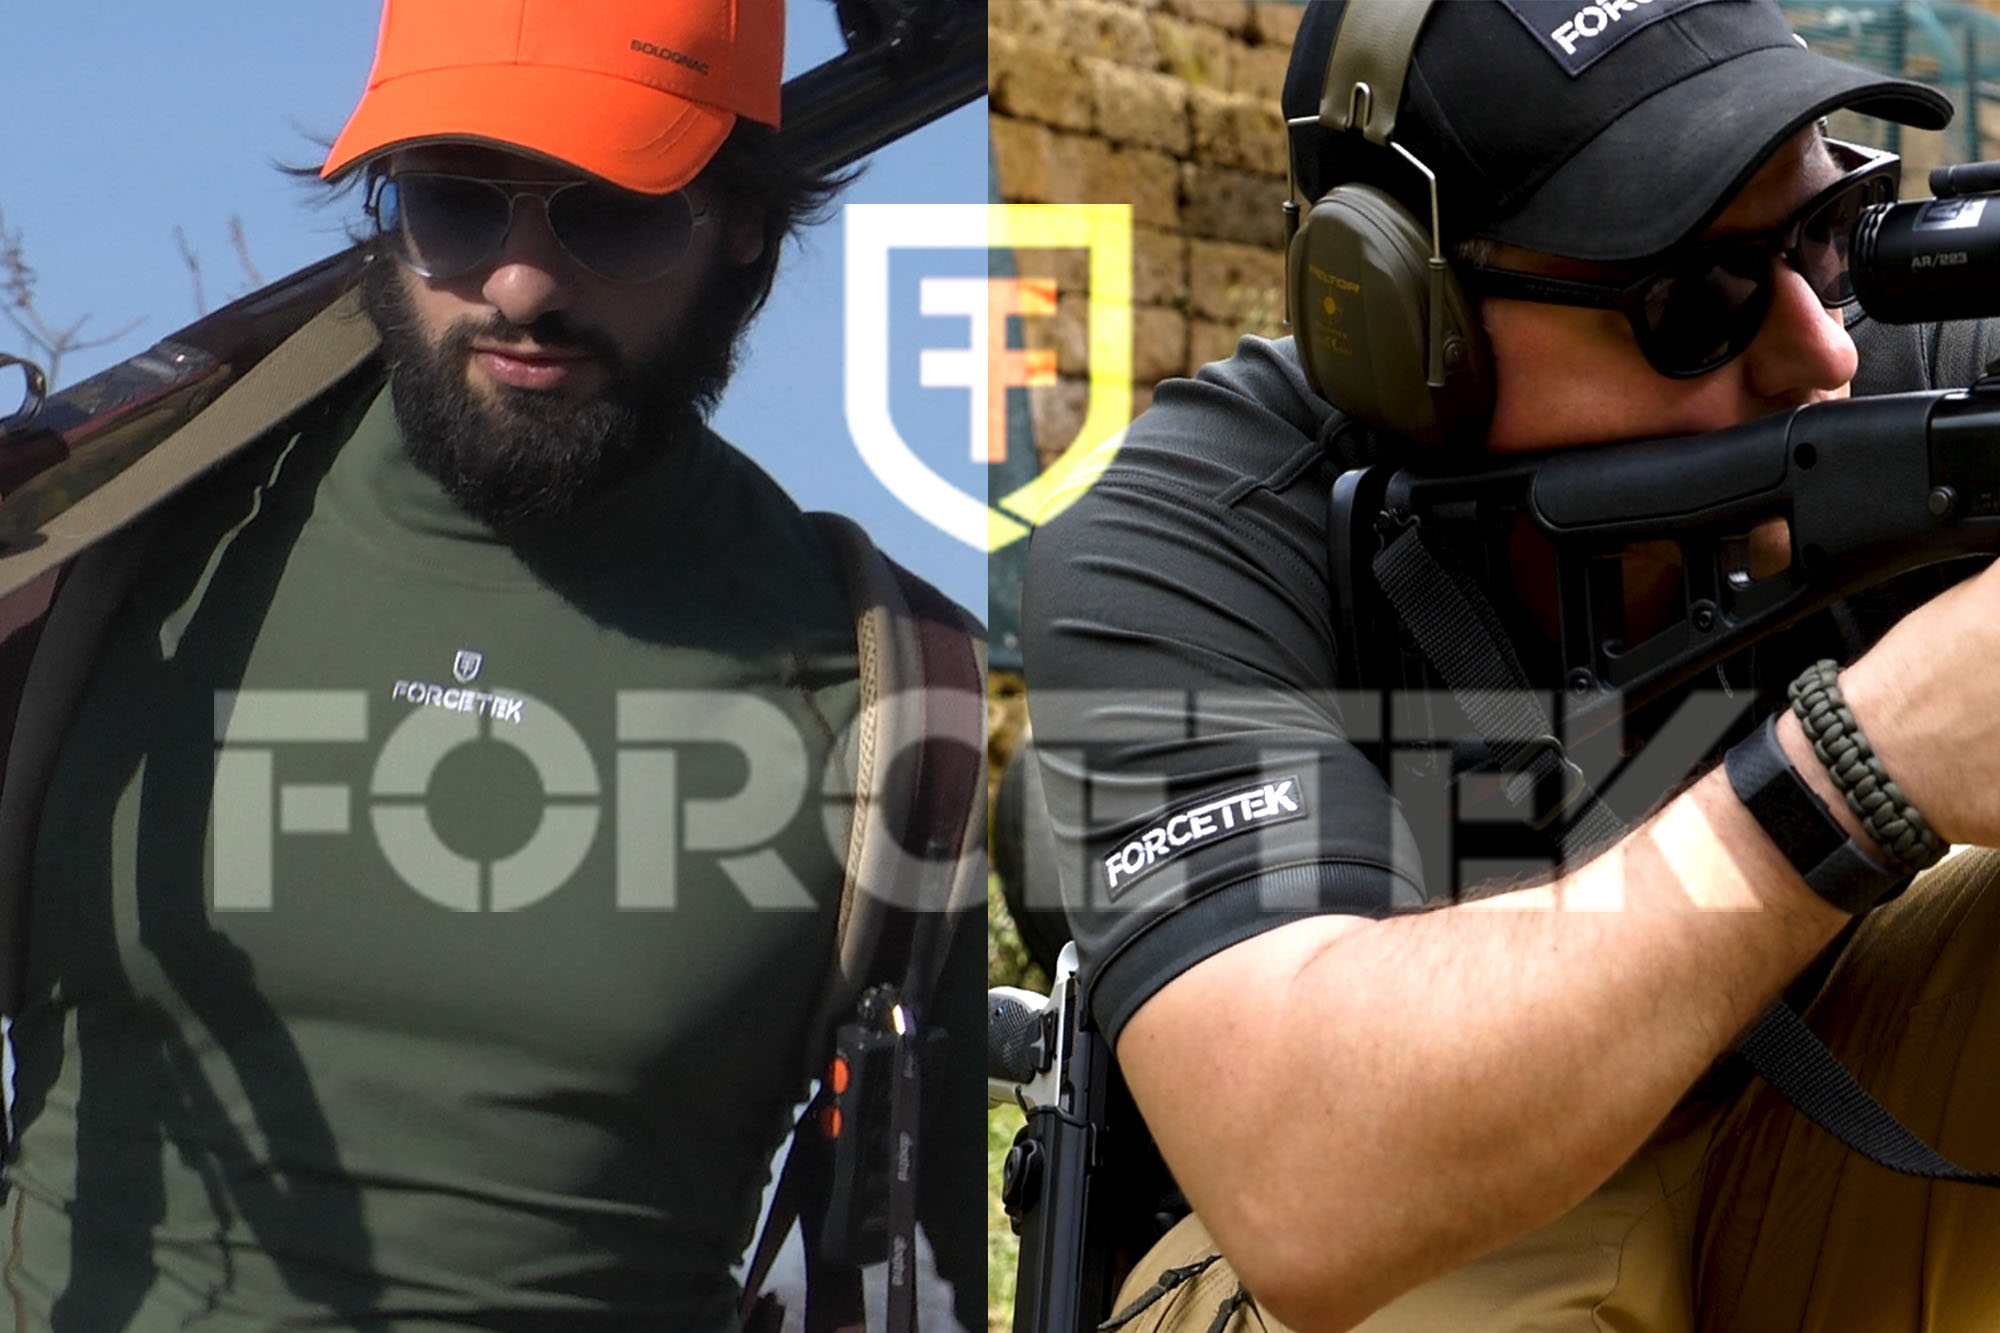 Hunter and shooter with Forcetek clothing.